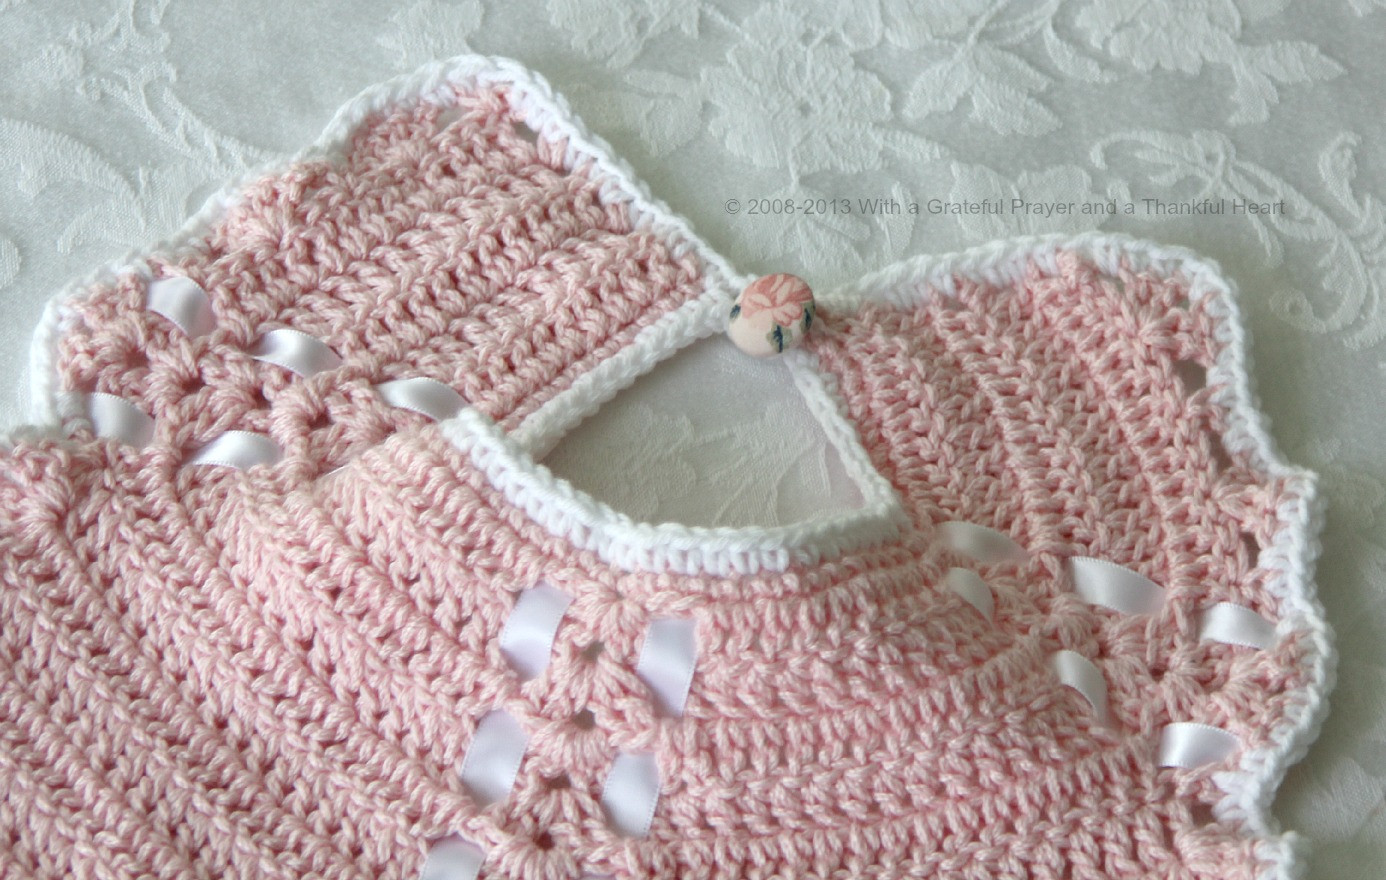 Awesome Crochet Baby Bib From Vintage Pattern Crochet Baby Bibs Of Wonderful 45 Models Crochet Baby Bibs